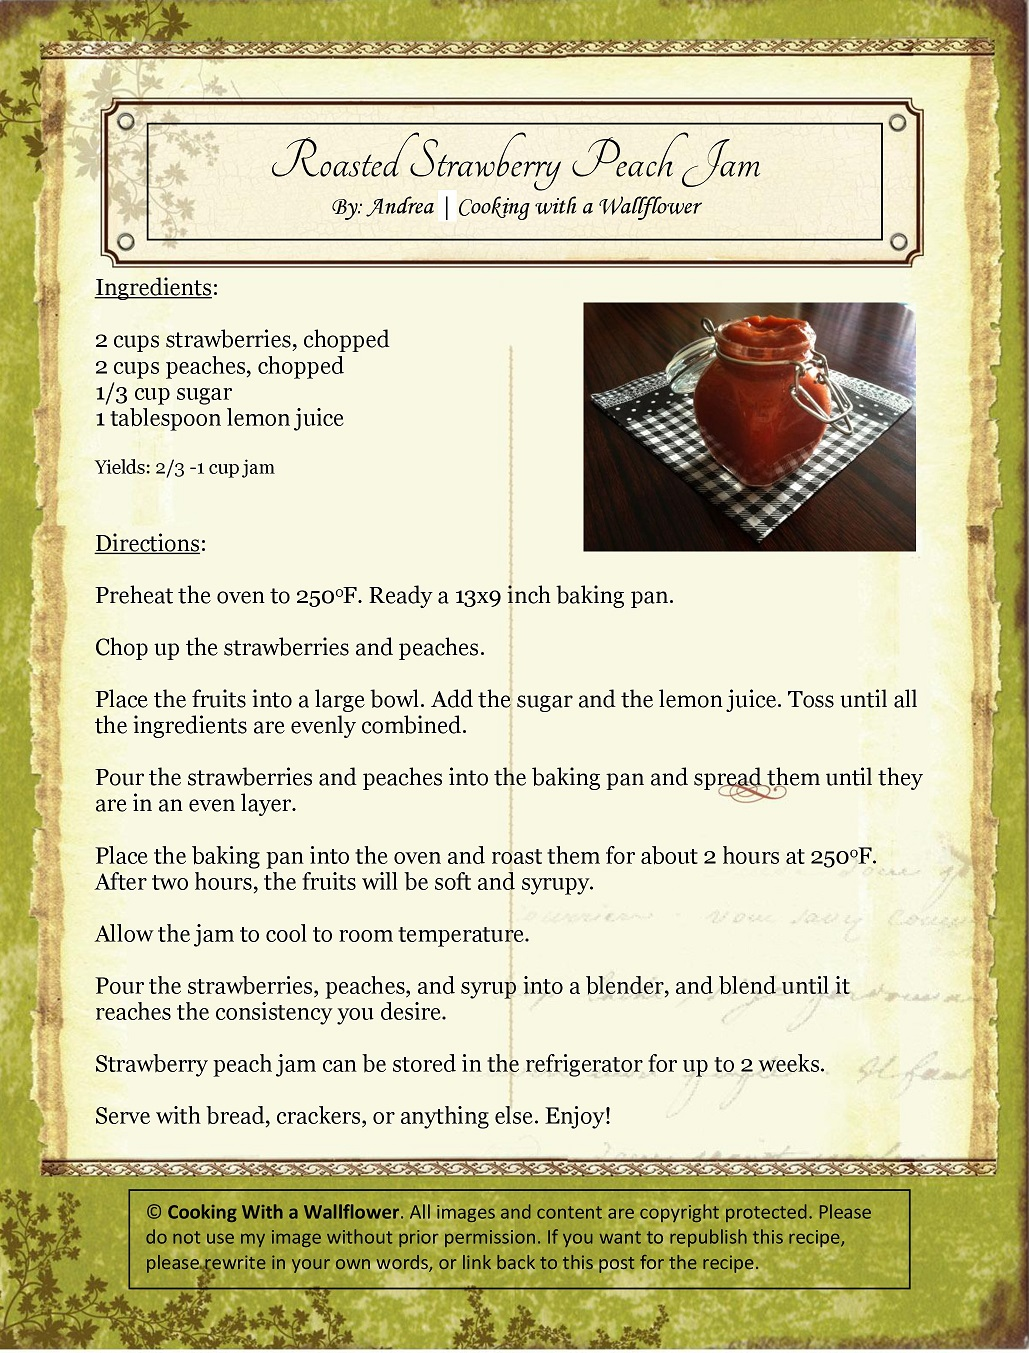 Roasted Strawberry Peach Jam Recipe Card